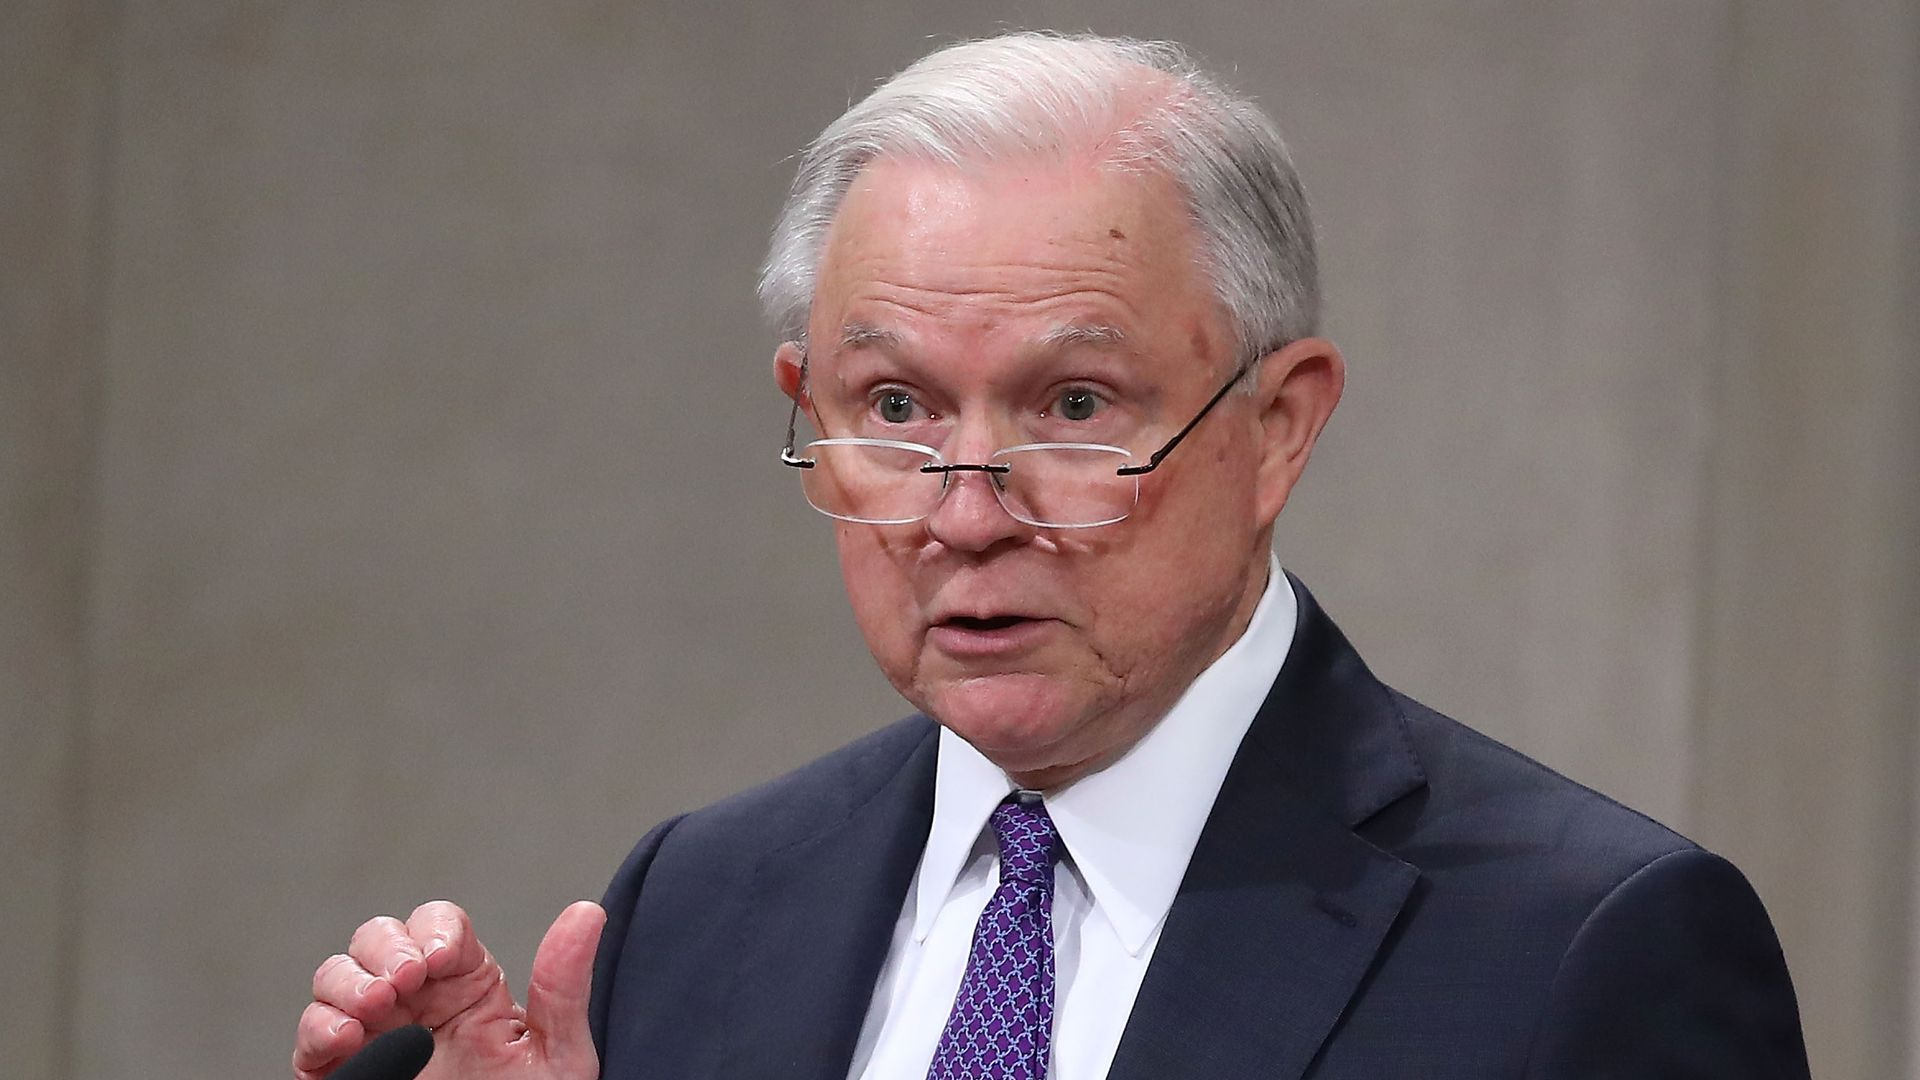 Jeff Sessions speaking into the microphone.